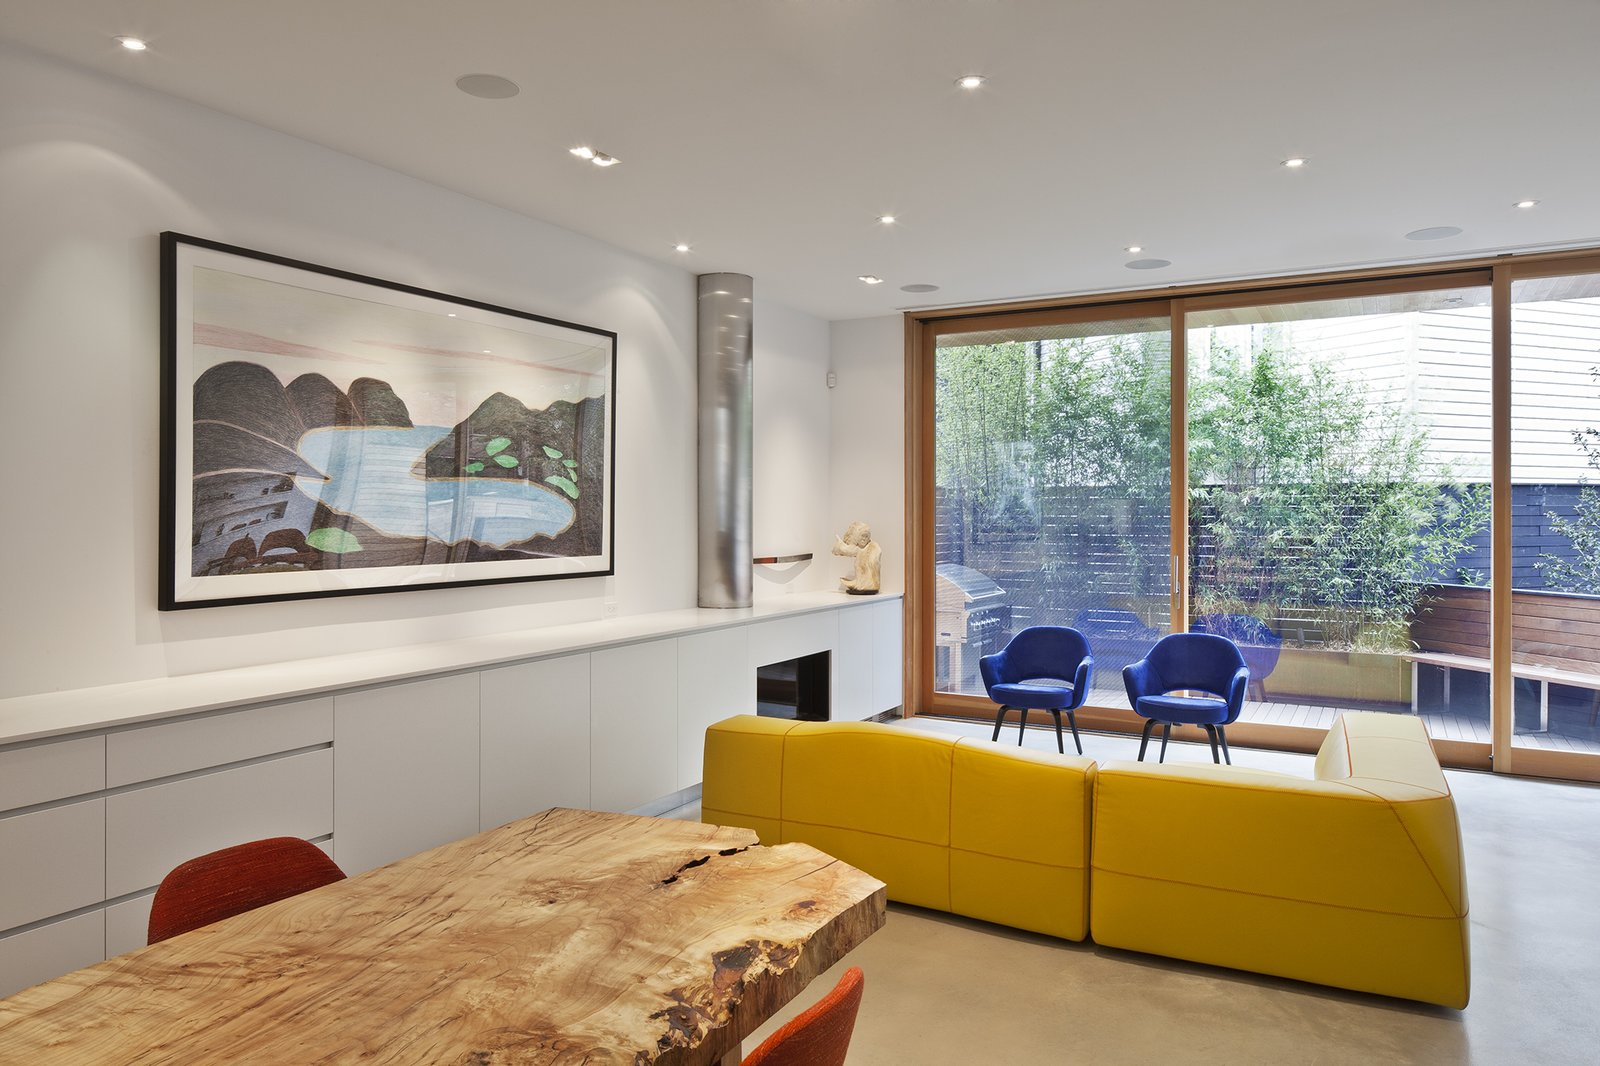 """""""The [design] is simple and flexible, with an open plan on the first floor that allows the kitchen to flow into the dining and living spaces,"""" Clarkson said. Concrete floors help to unify the spaces, which feature a B&B Italia Bend-Sofa and Saarinen executive armchairs in royal blue velvet."""